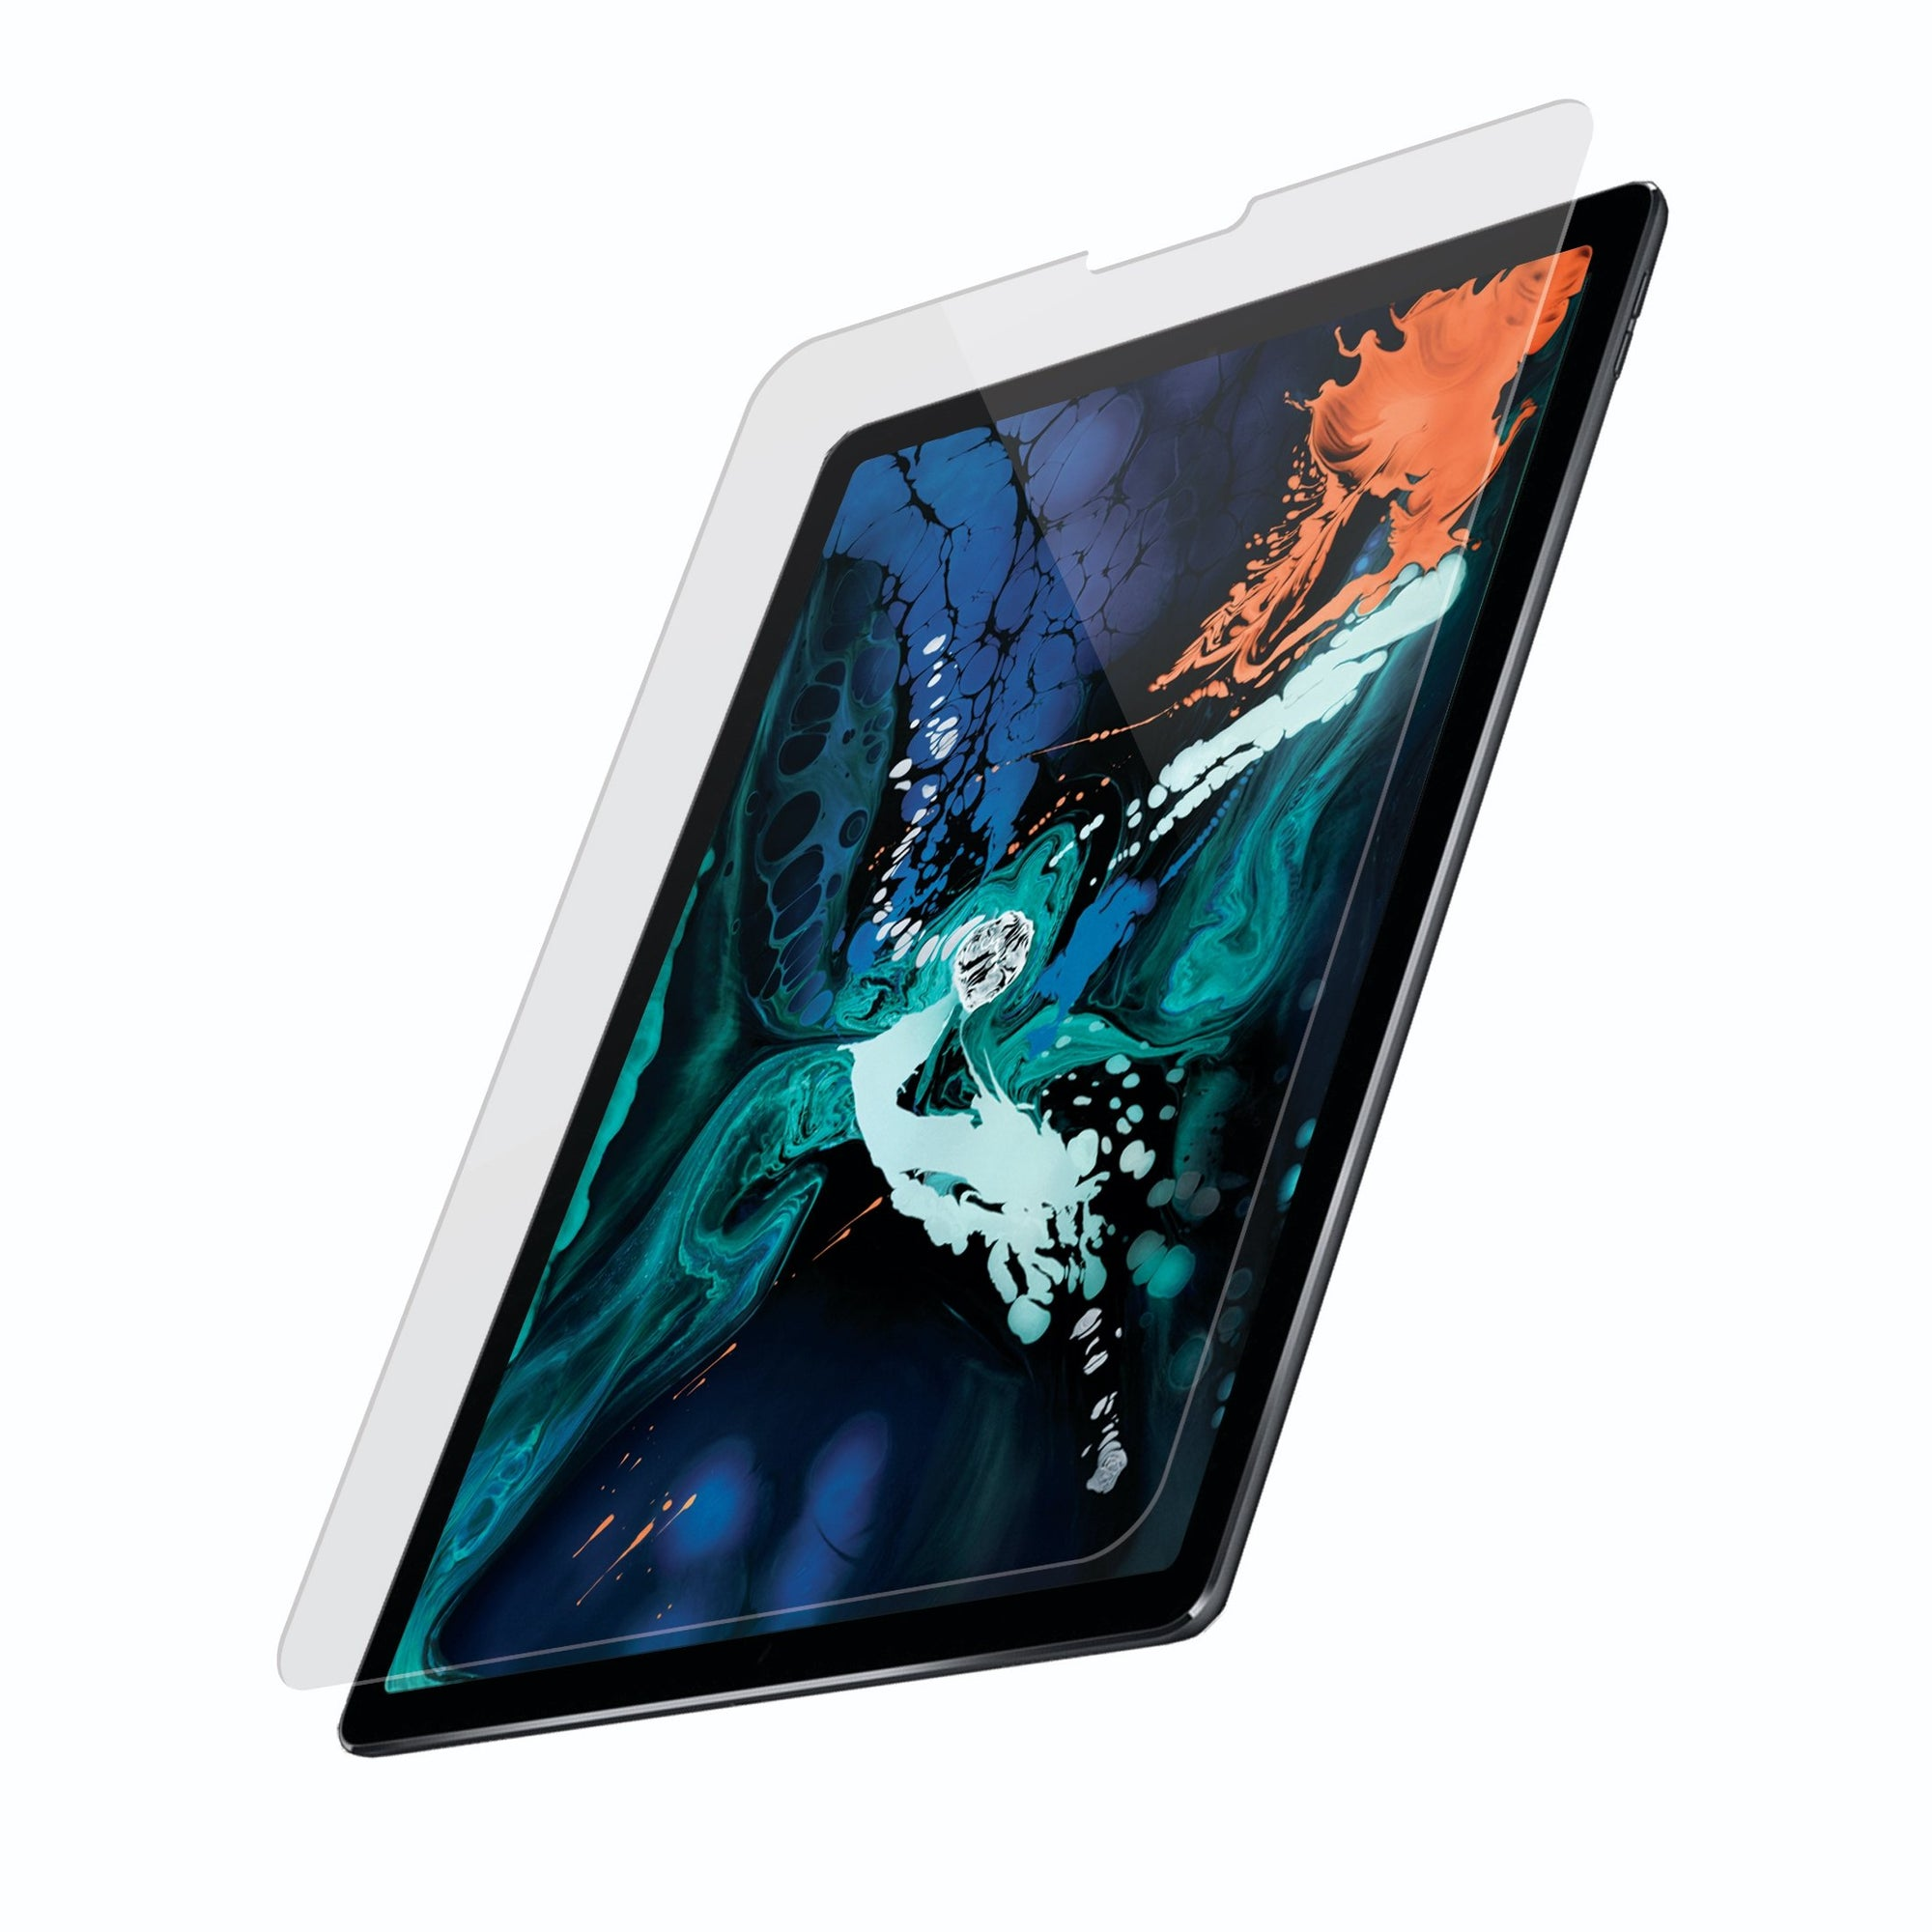 "NVS Atom Glass for iPad Pro 12.9"" (Gen 4 & 3)"